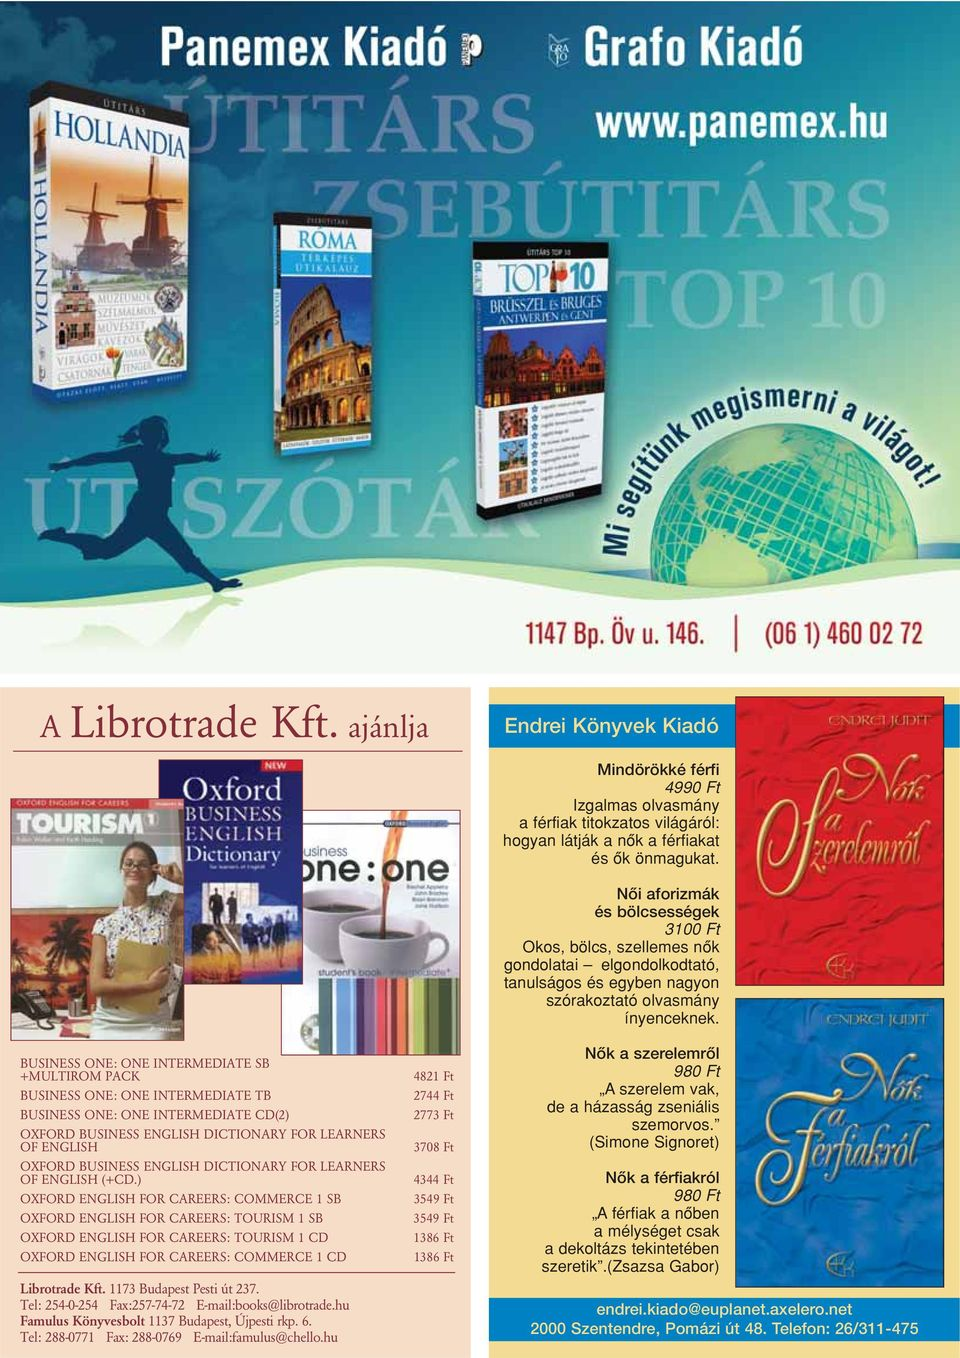 ENGLISH OXFORD BUSINESS ENGLISH DICTIONARY FOR LEARNERS OF ENGLISH (+CD.